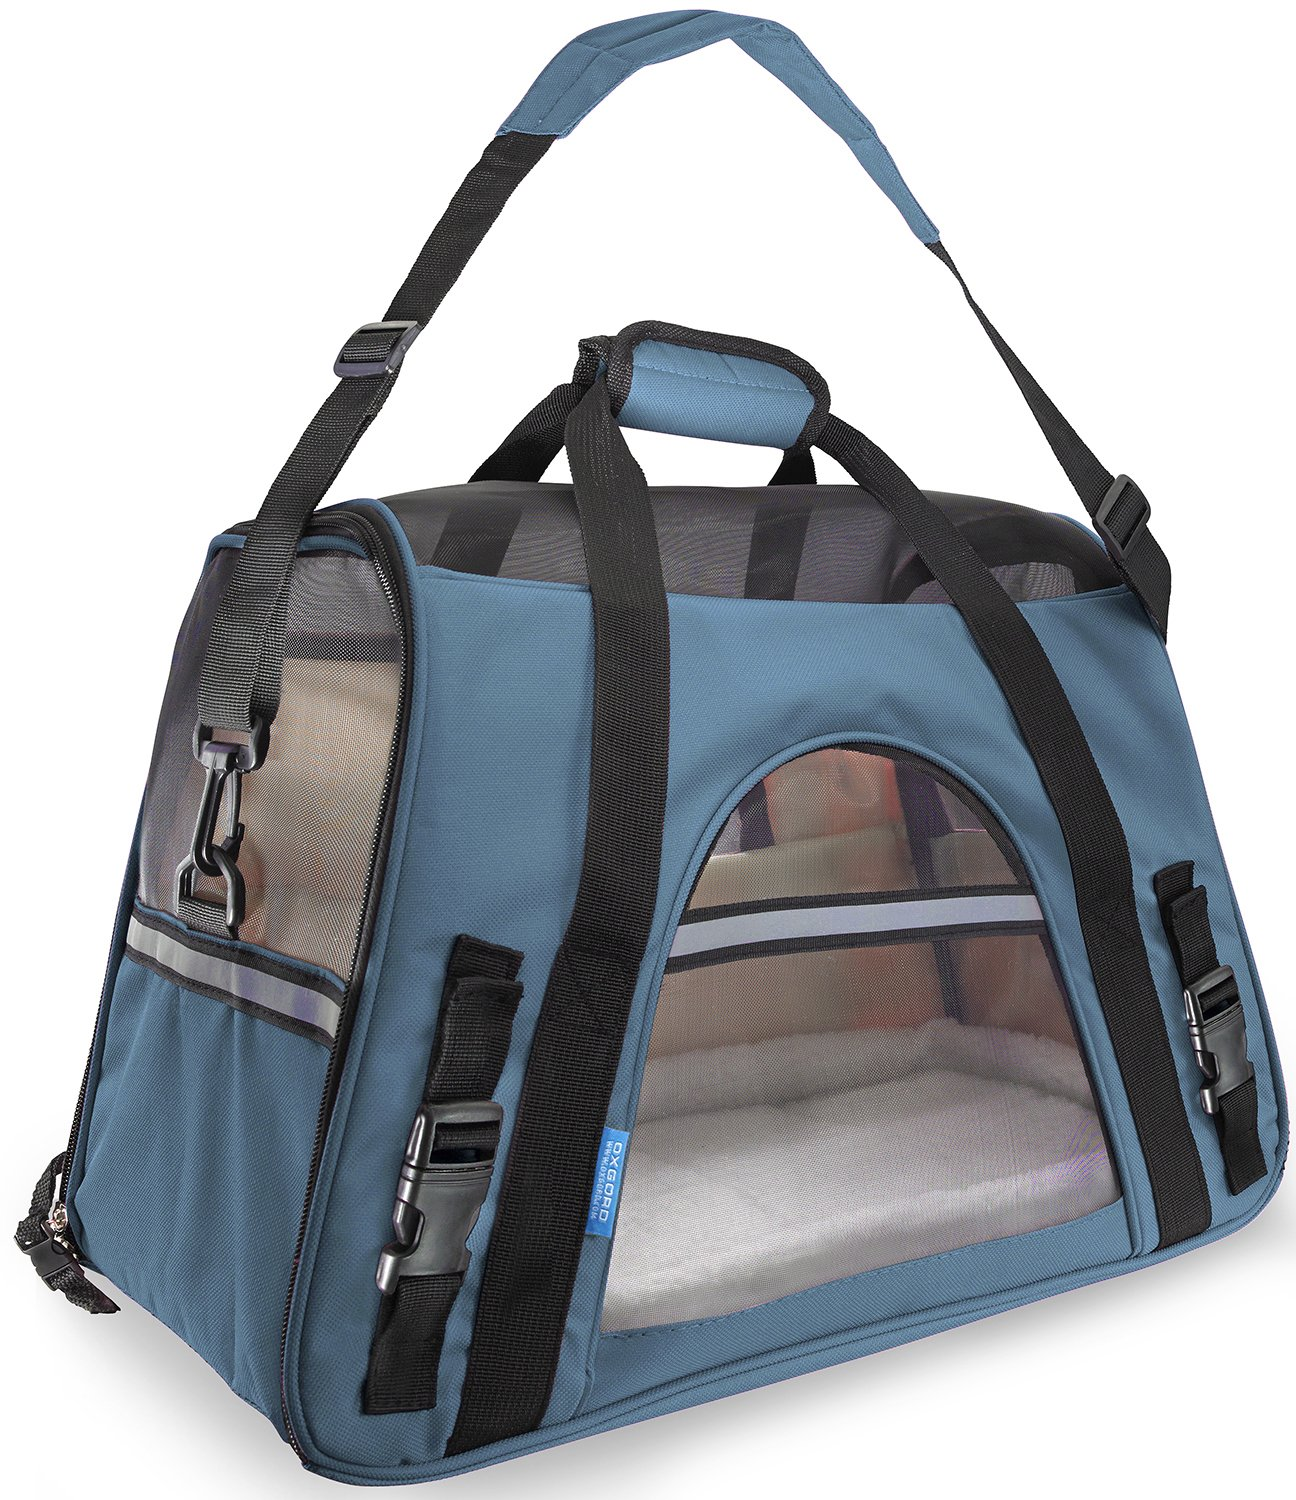 Paws & Pals Airline Approved Pet Carriers w/Fleece Bed For Dog & Cat - Soft Sided Kennel - Small, Mineral Blue